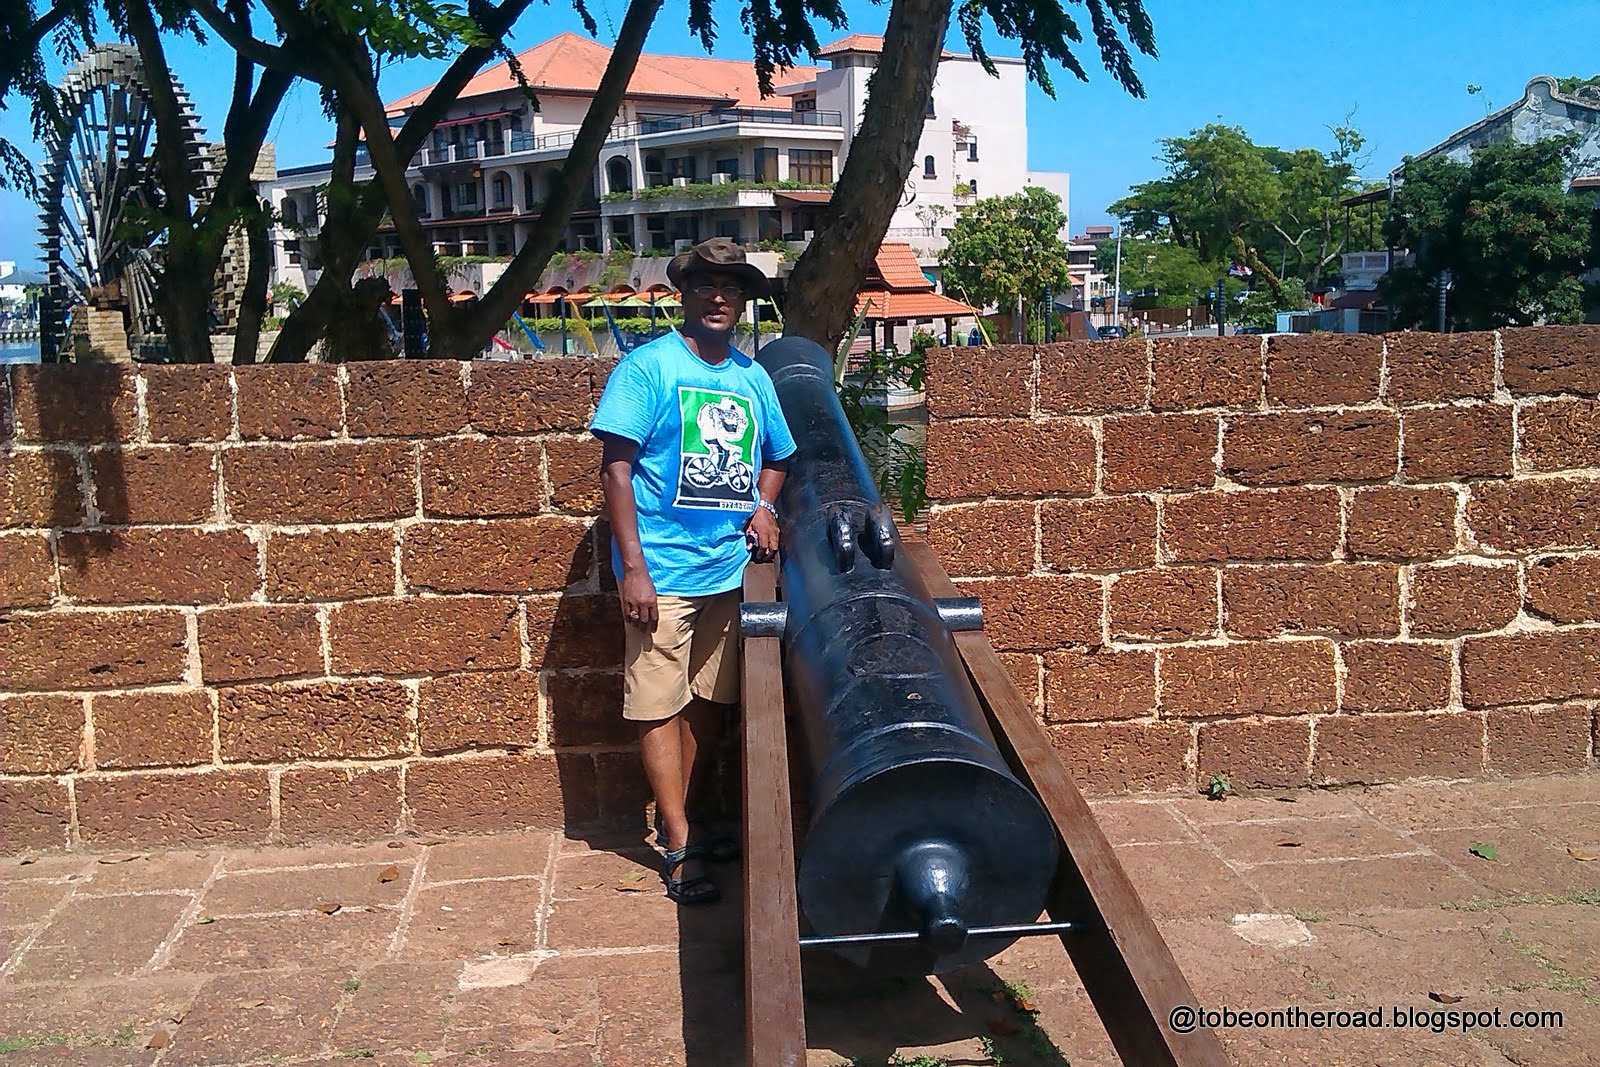 Canon,Fort